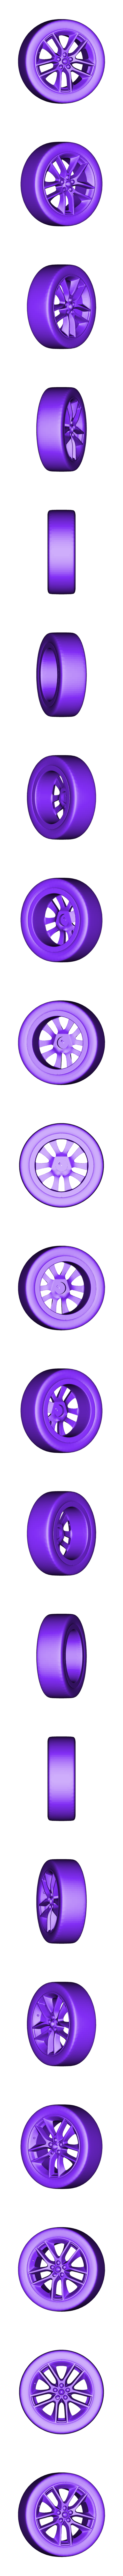 wheel resized.stl Download free STL file MUSTANG 2016 • 3D printer object, EASY3DSTORE